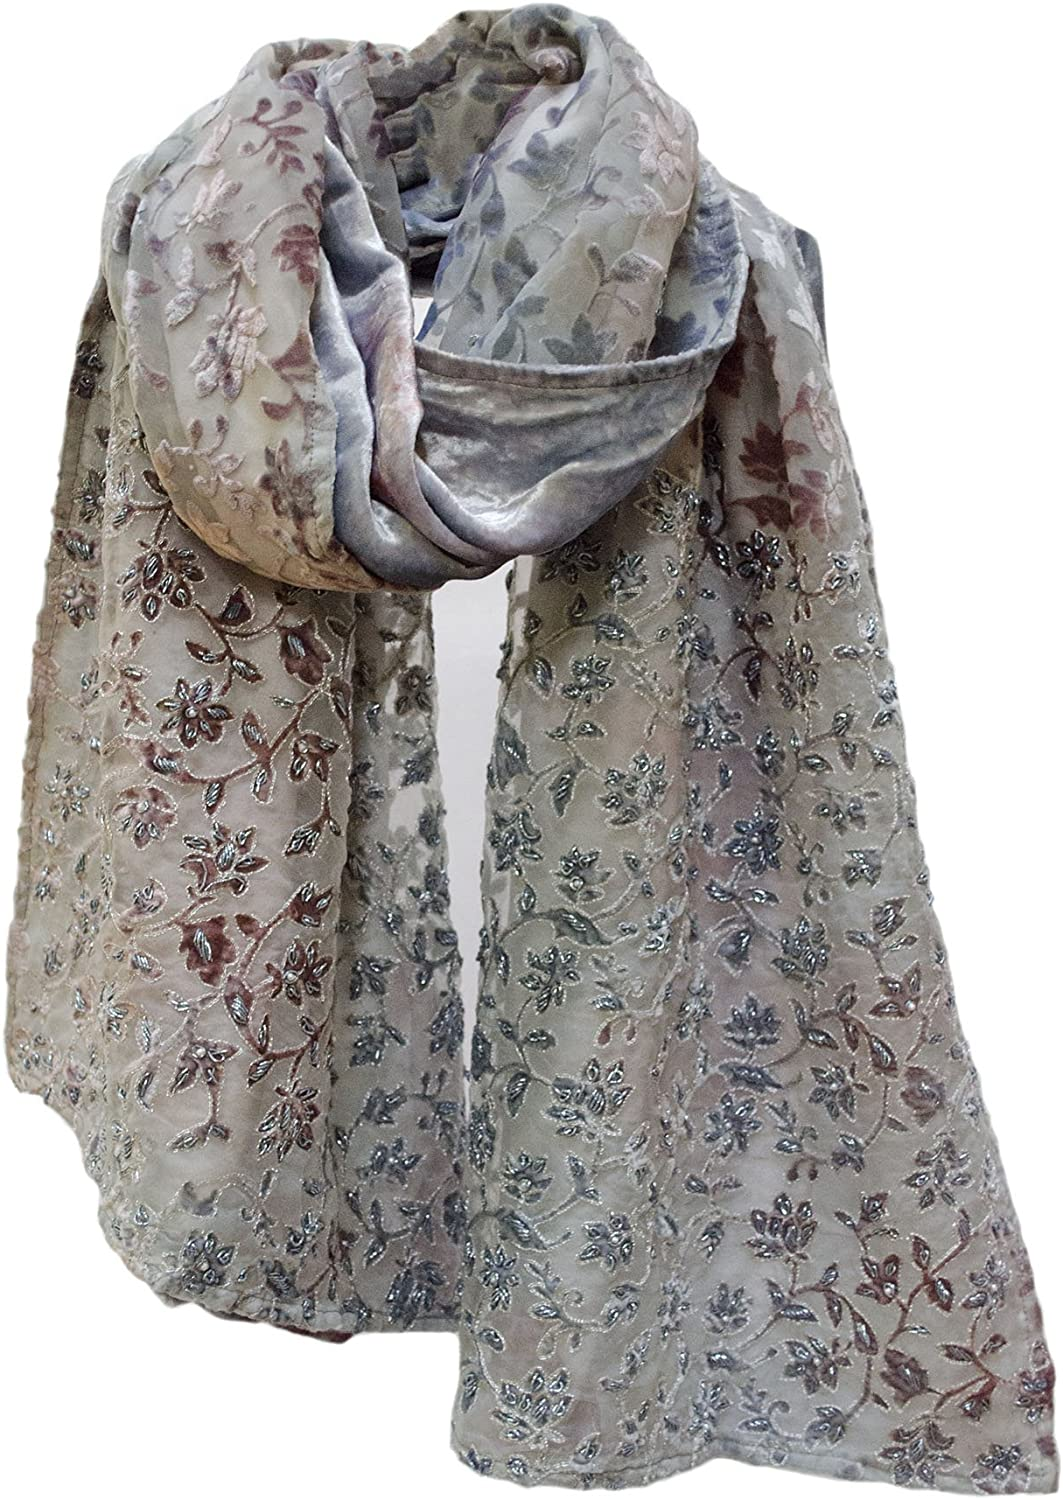 Beaded Floral Burnout Cut Velvet Shawl Wrap Stole Scarf Runner Steel bluee Coffee Pink